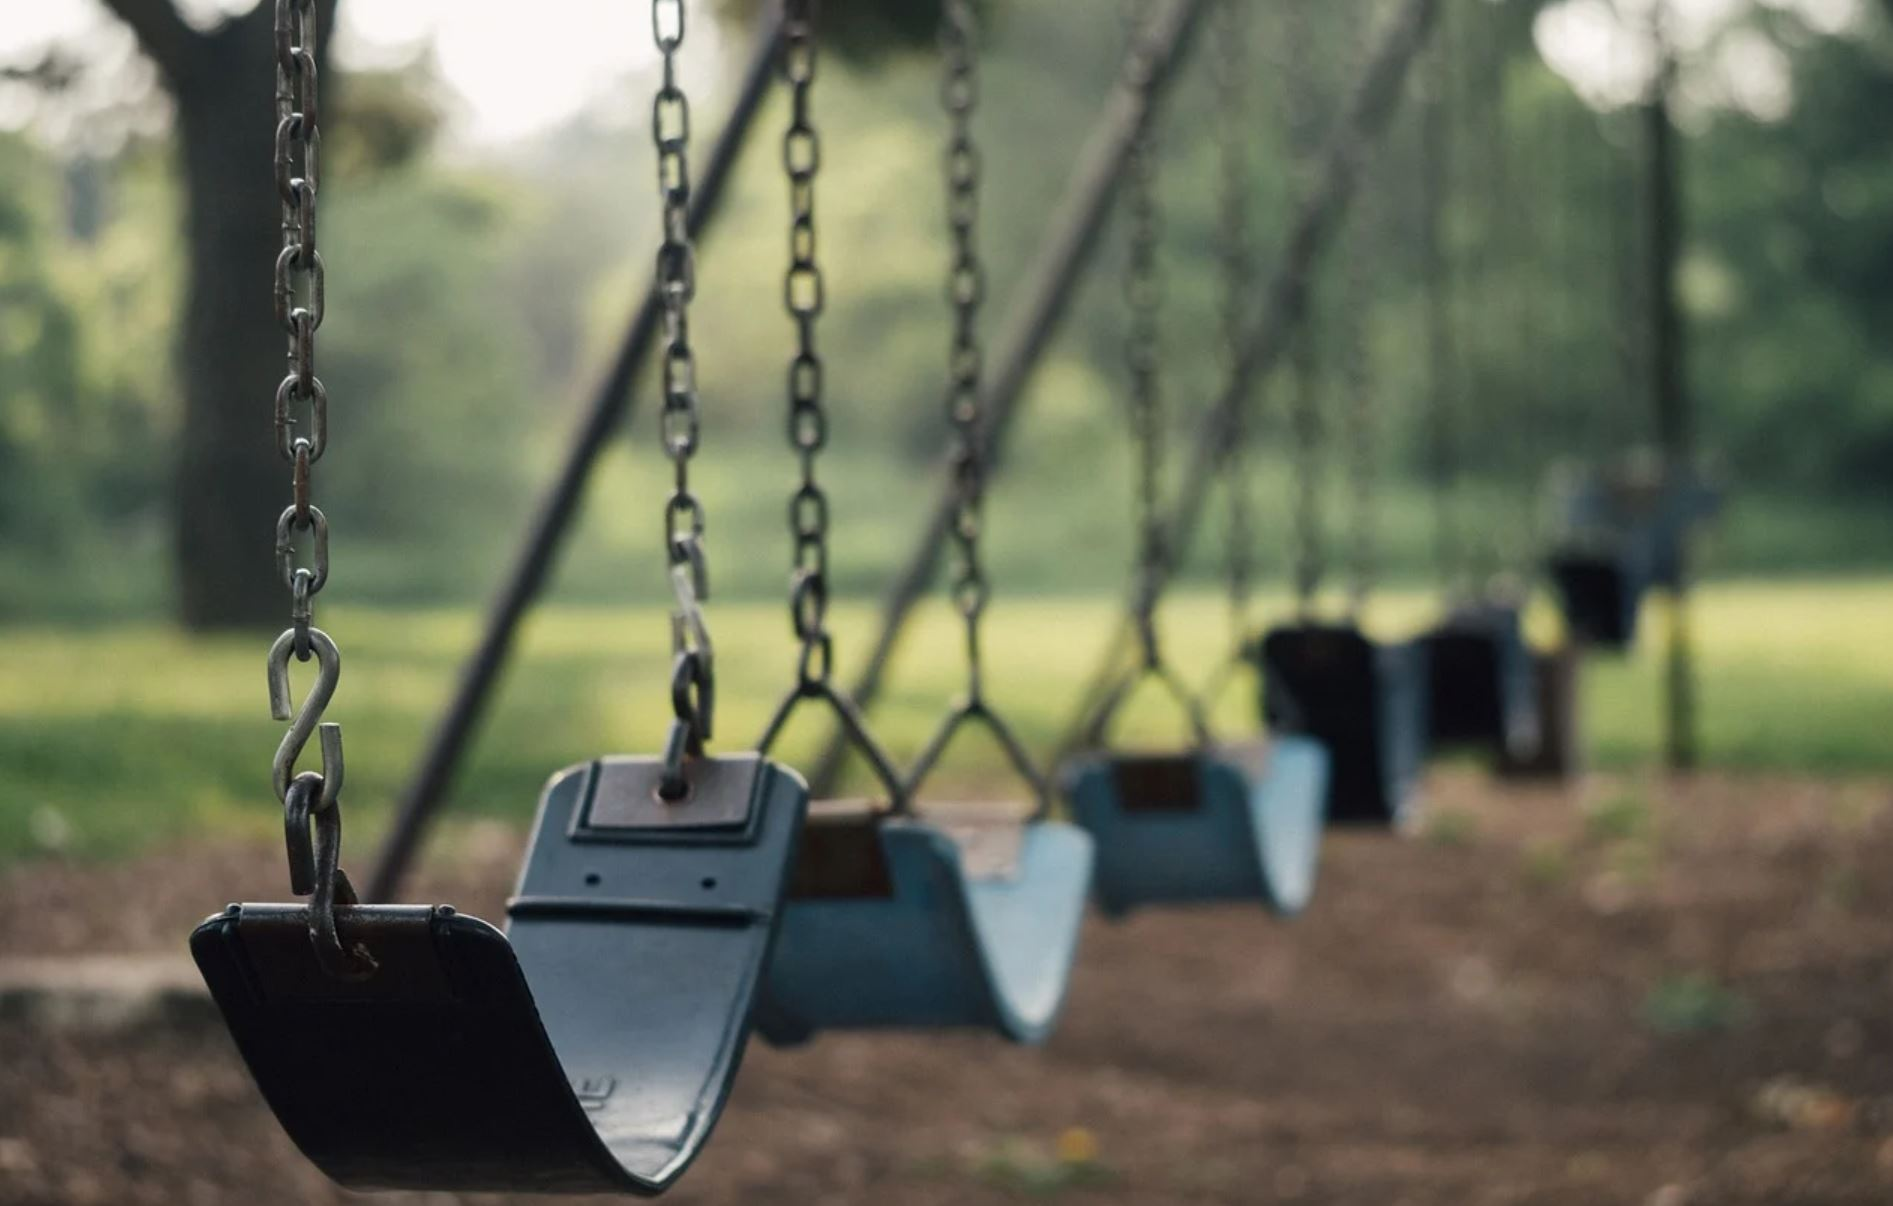 Legislation to Keep Pesticides Away from Schools, Classrooms, Community Parks, and Playgrounds 1